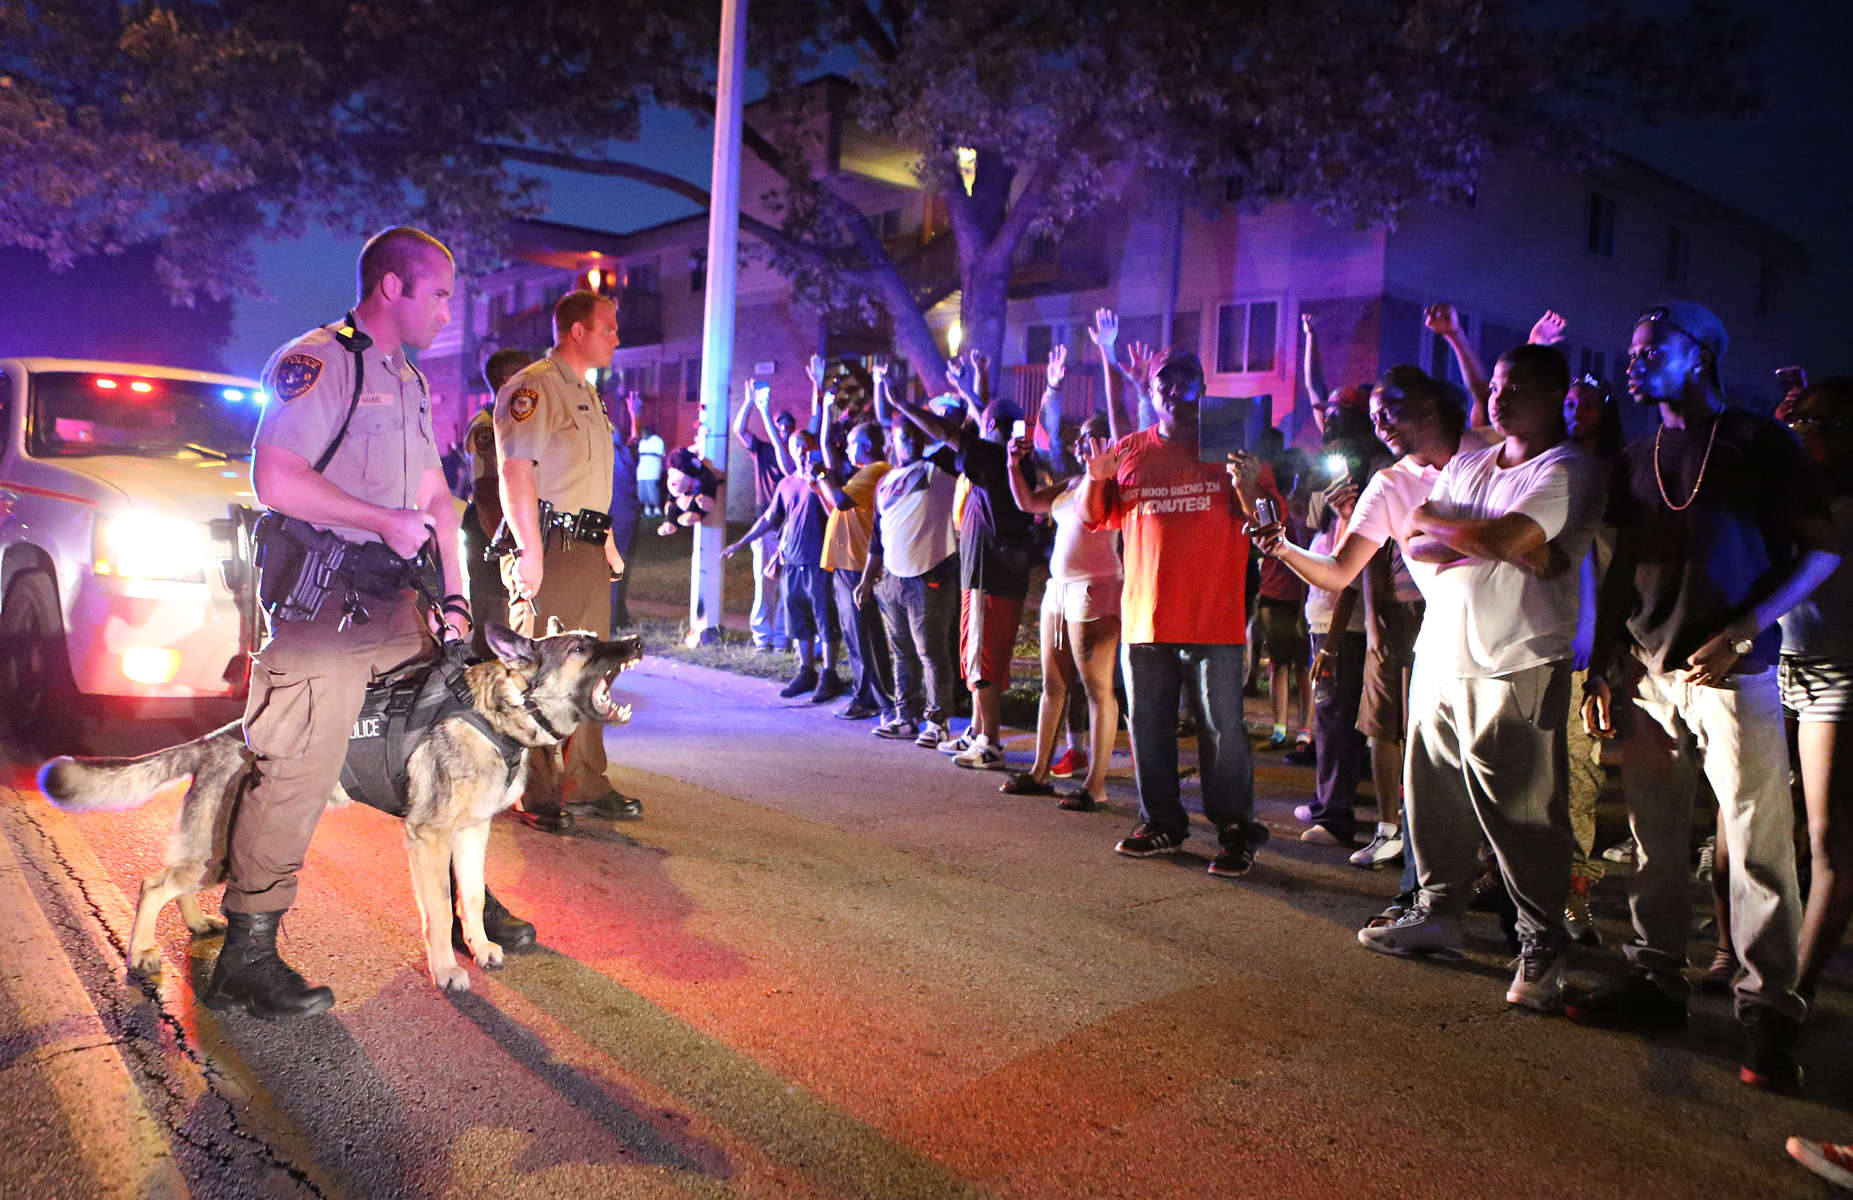 Police officers confront a crowd they're trying to break up a on Canfield Dr. in Ferguson, Mo. on Saturday, Aug. 9, 2014. Earlier in the day police had shot and killed Michael Brown, an unarmed18 year-old man, and community members turned out large numbers at the scene to express their outrage.